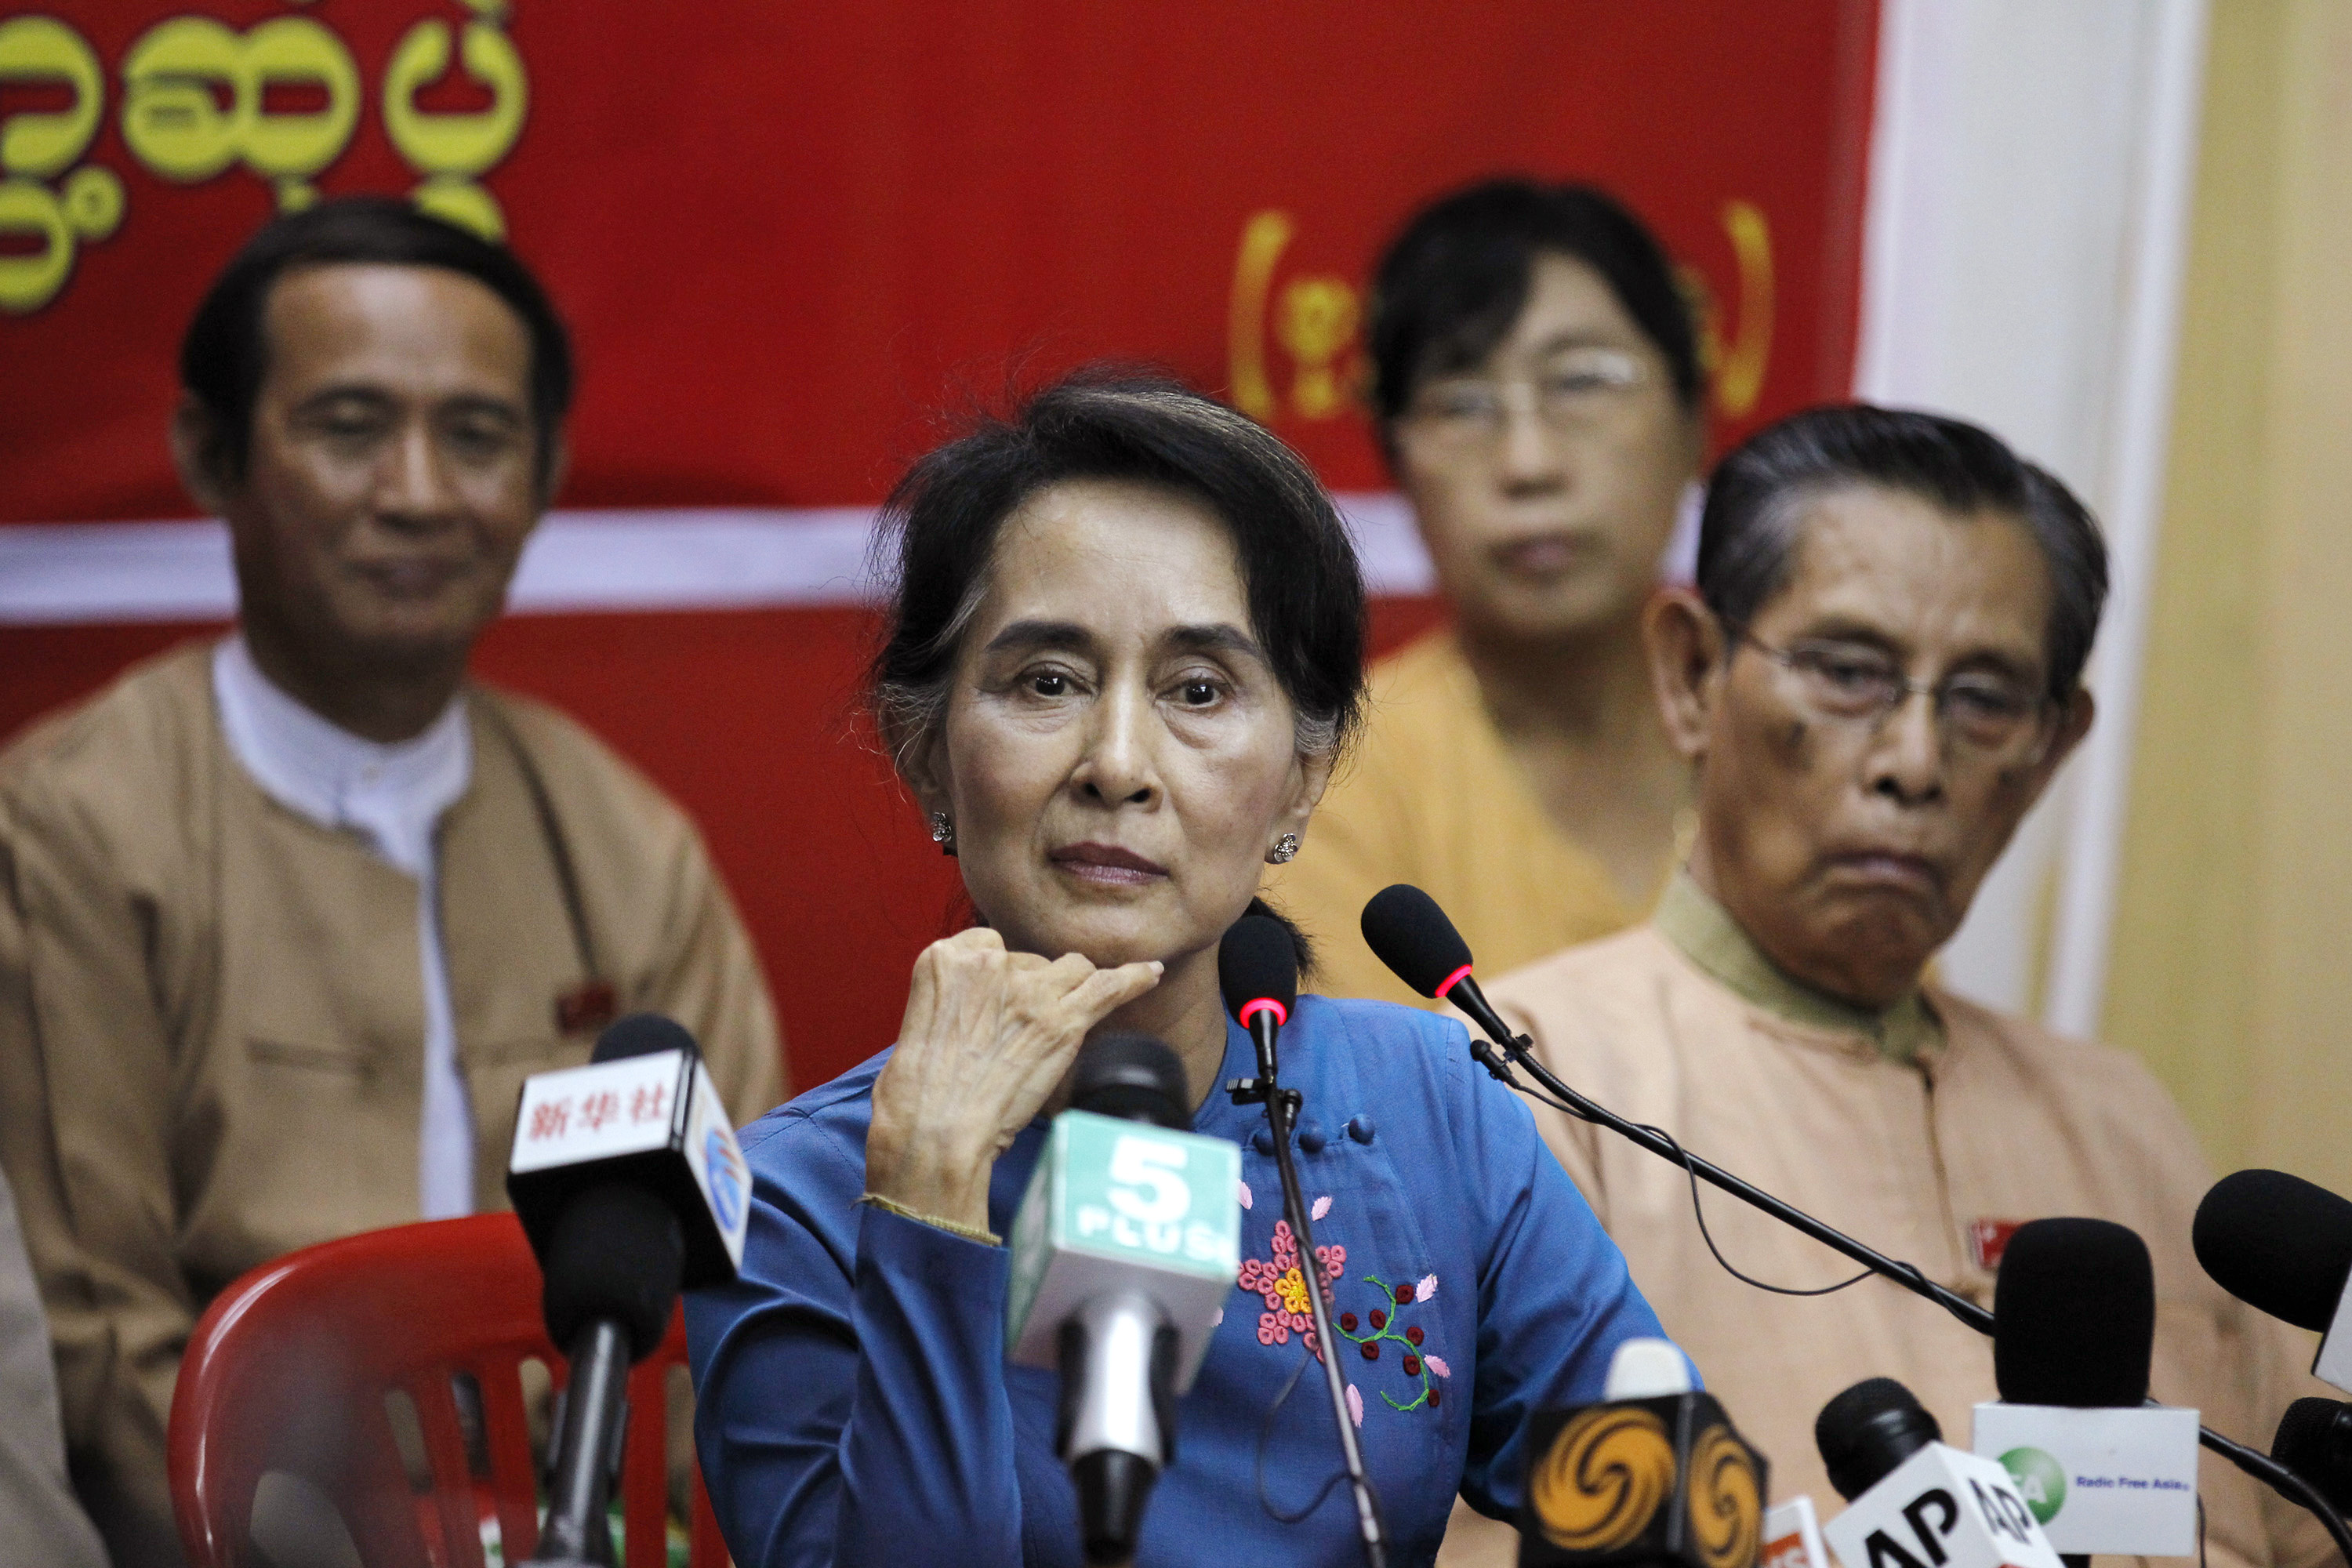 Myanmar's pro-democracy leader Aung San Suu Kyi listens as reporter asks her a question during a news conference at the National League for Democracy party head office in Rangoon on Nov. 5, 2014